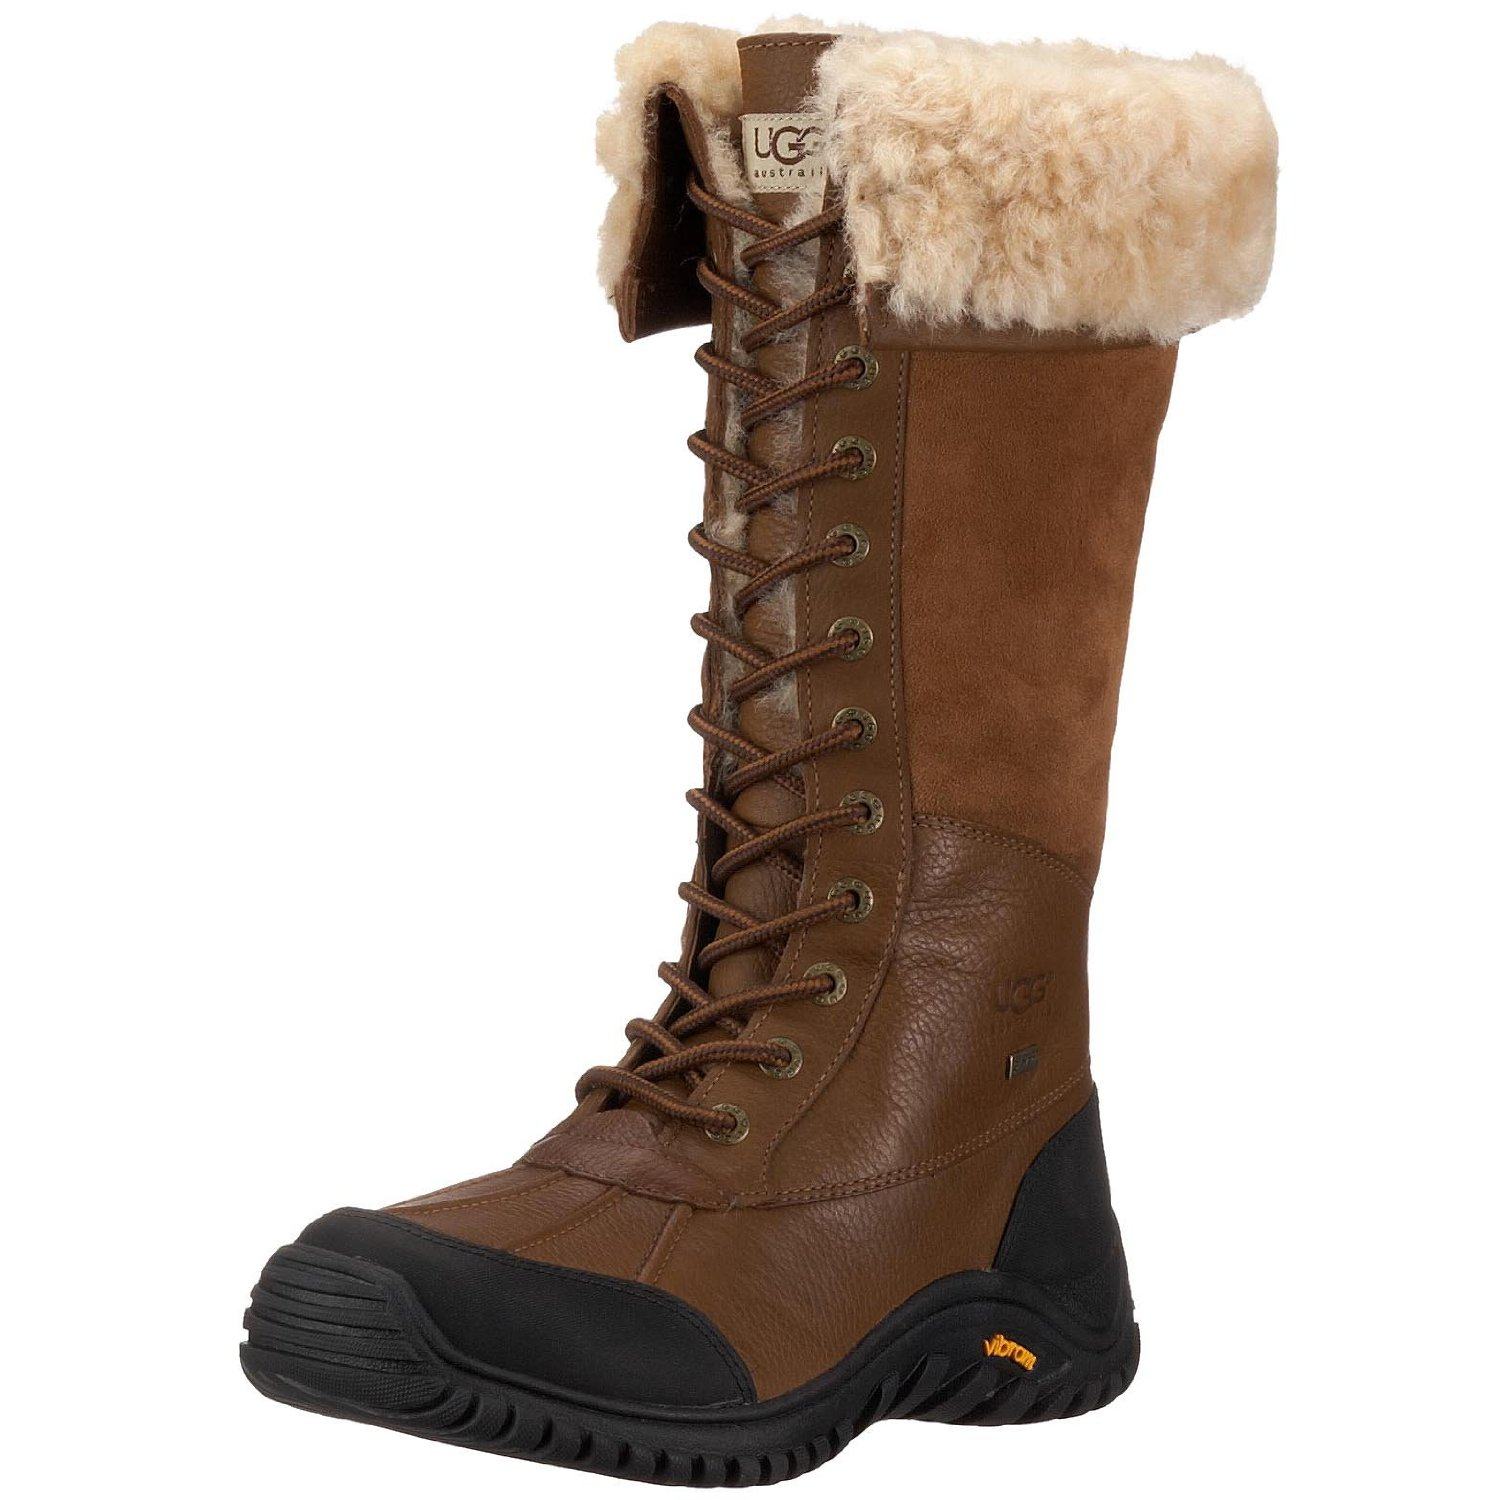 Elegant We Tested Dozens Of Winter Boots To Find The Best Ones For Different Womens Needs After All  Why Youll Love Them The UGG Adirondack II Boots Are Super Cute Winter Boots That Can Handle Extreme Cold And Deep Snow Without Any